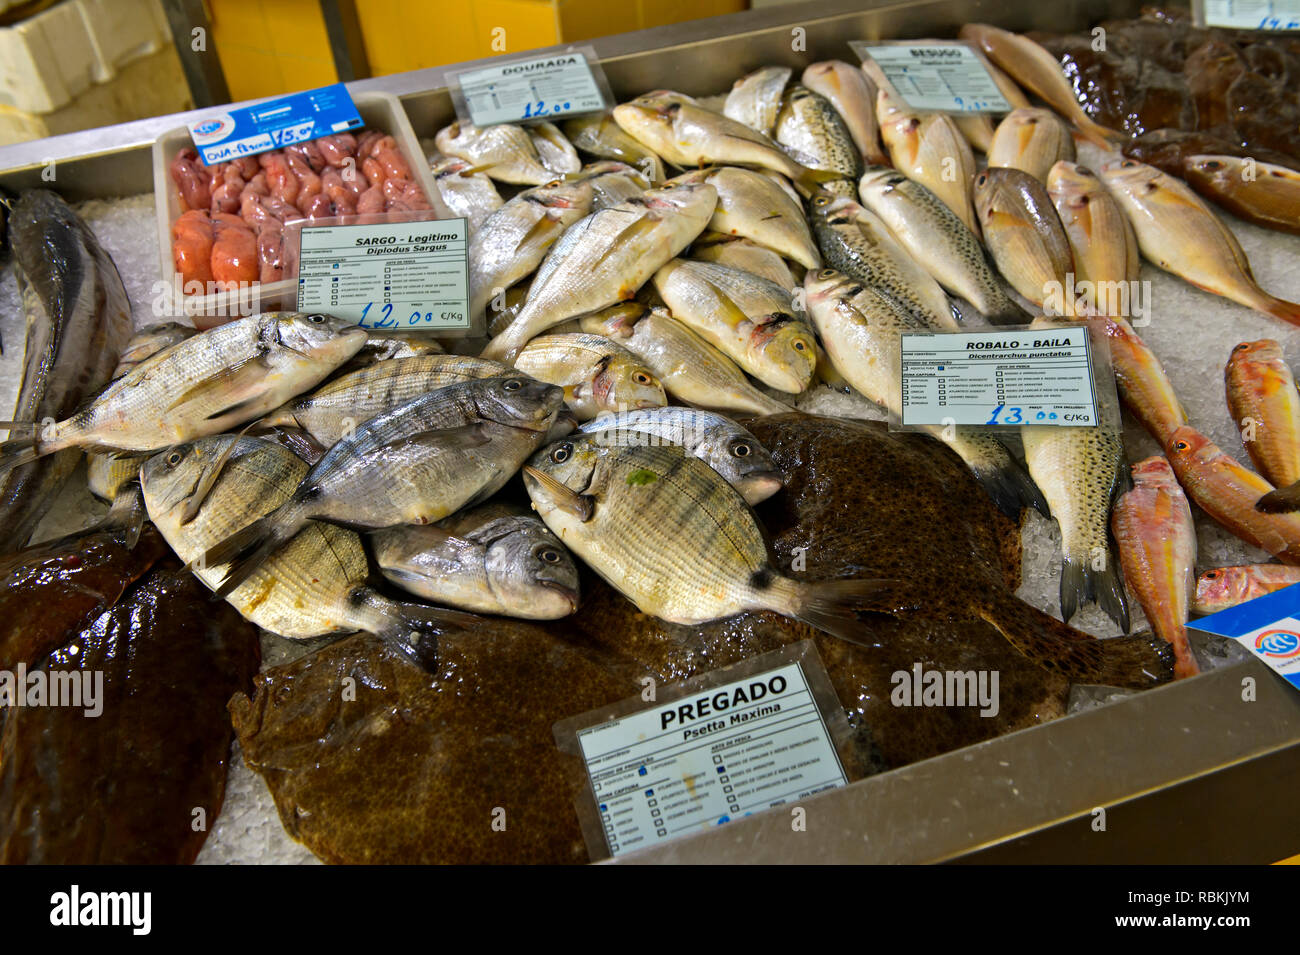 Freshly caught fish on the fishmarket, Tavira, Algarve, Portugal - Stock Image